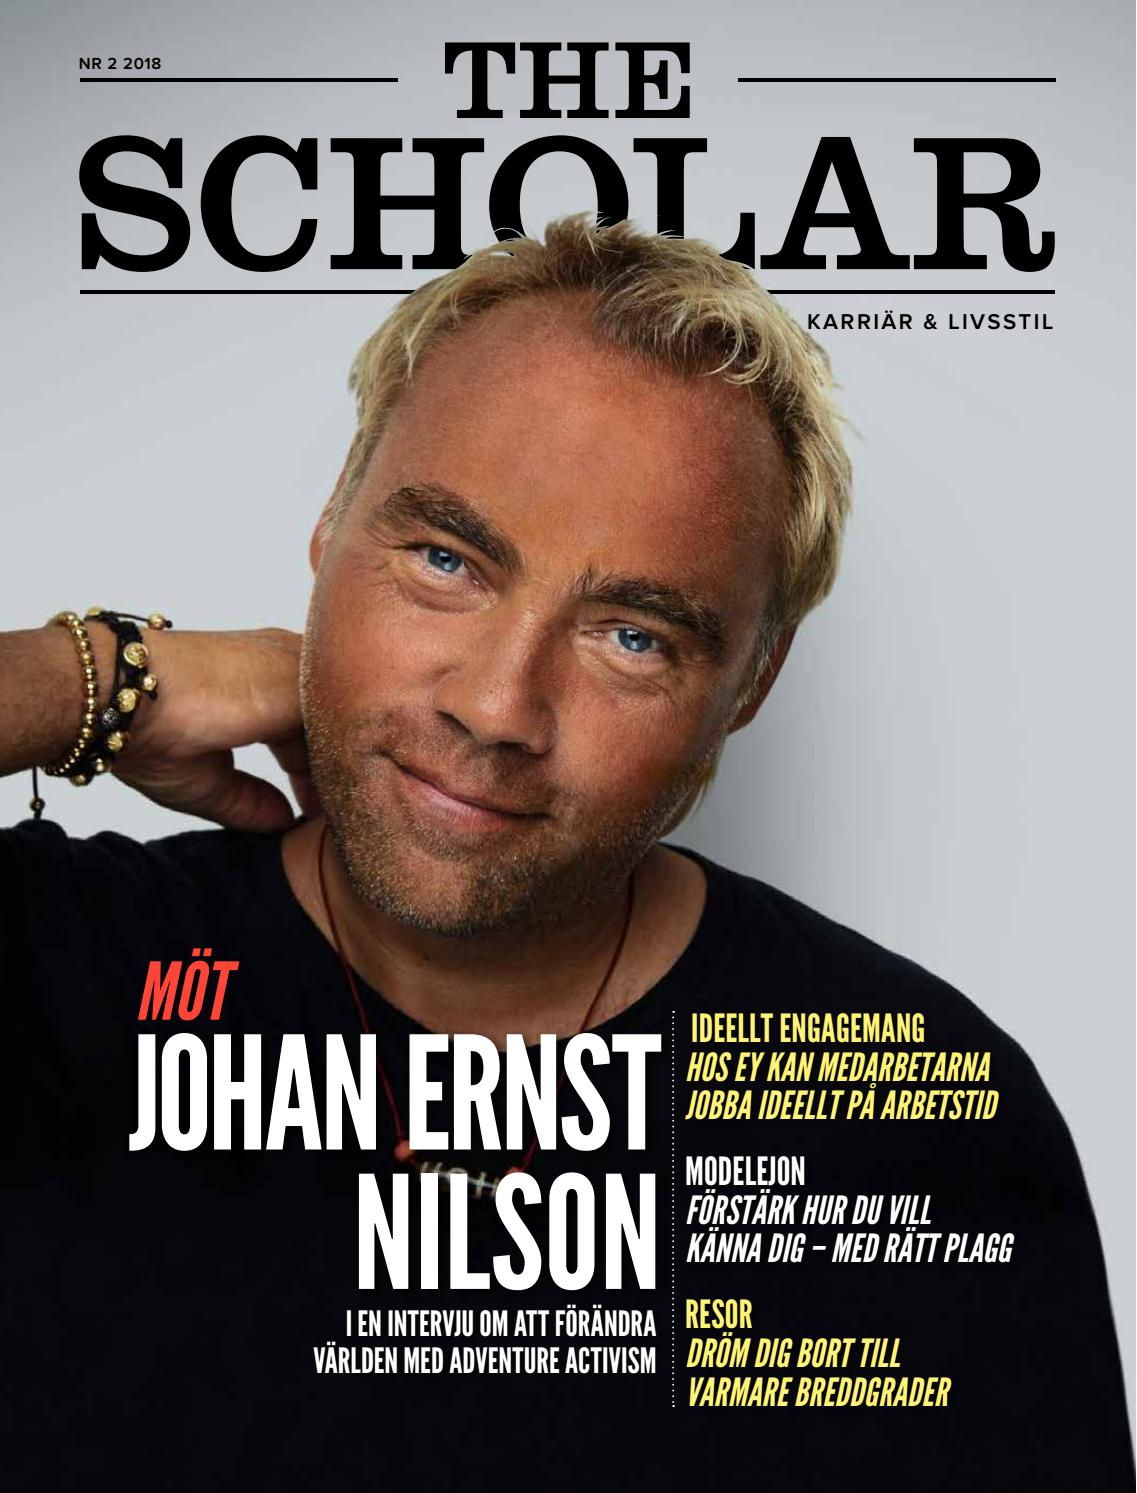 The Scholar nr 2 2018 by Human Performance - issuu 1ad0530894044